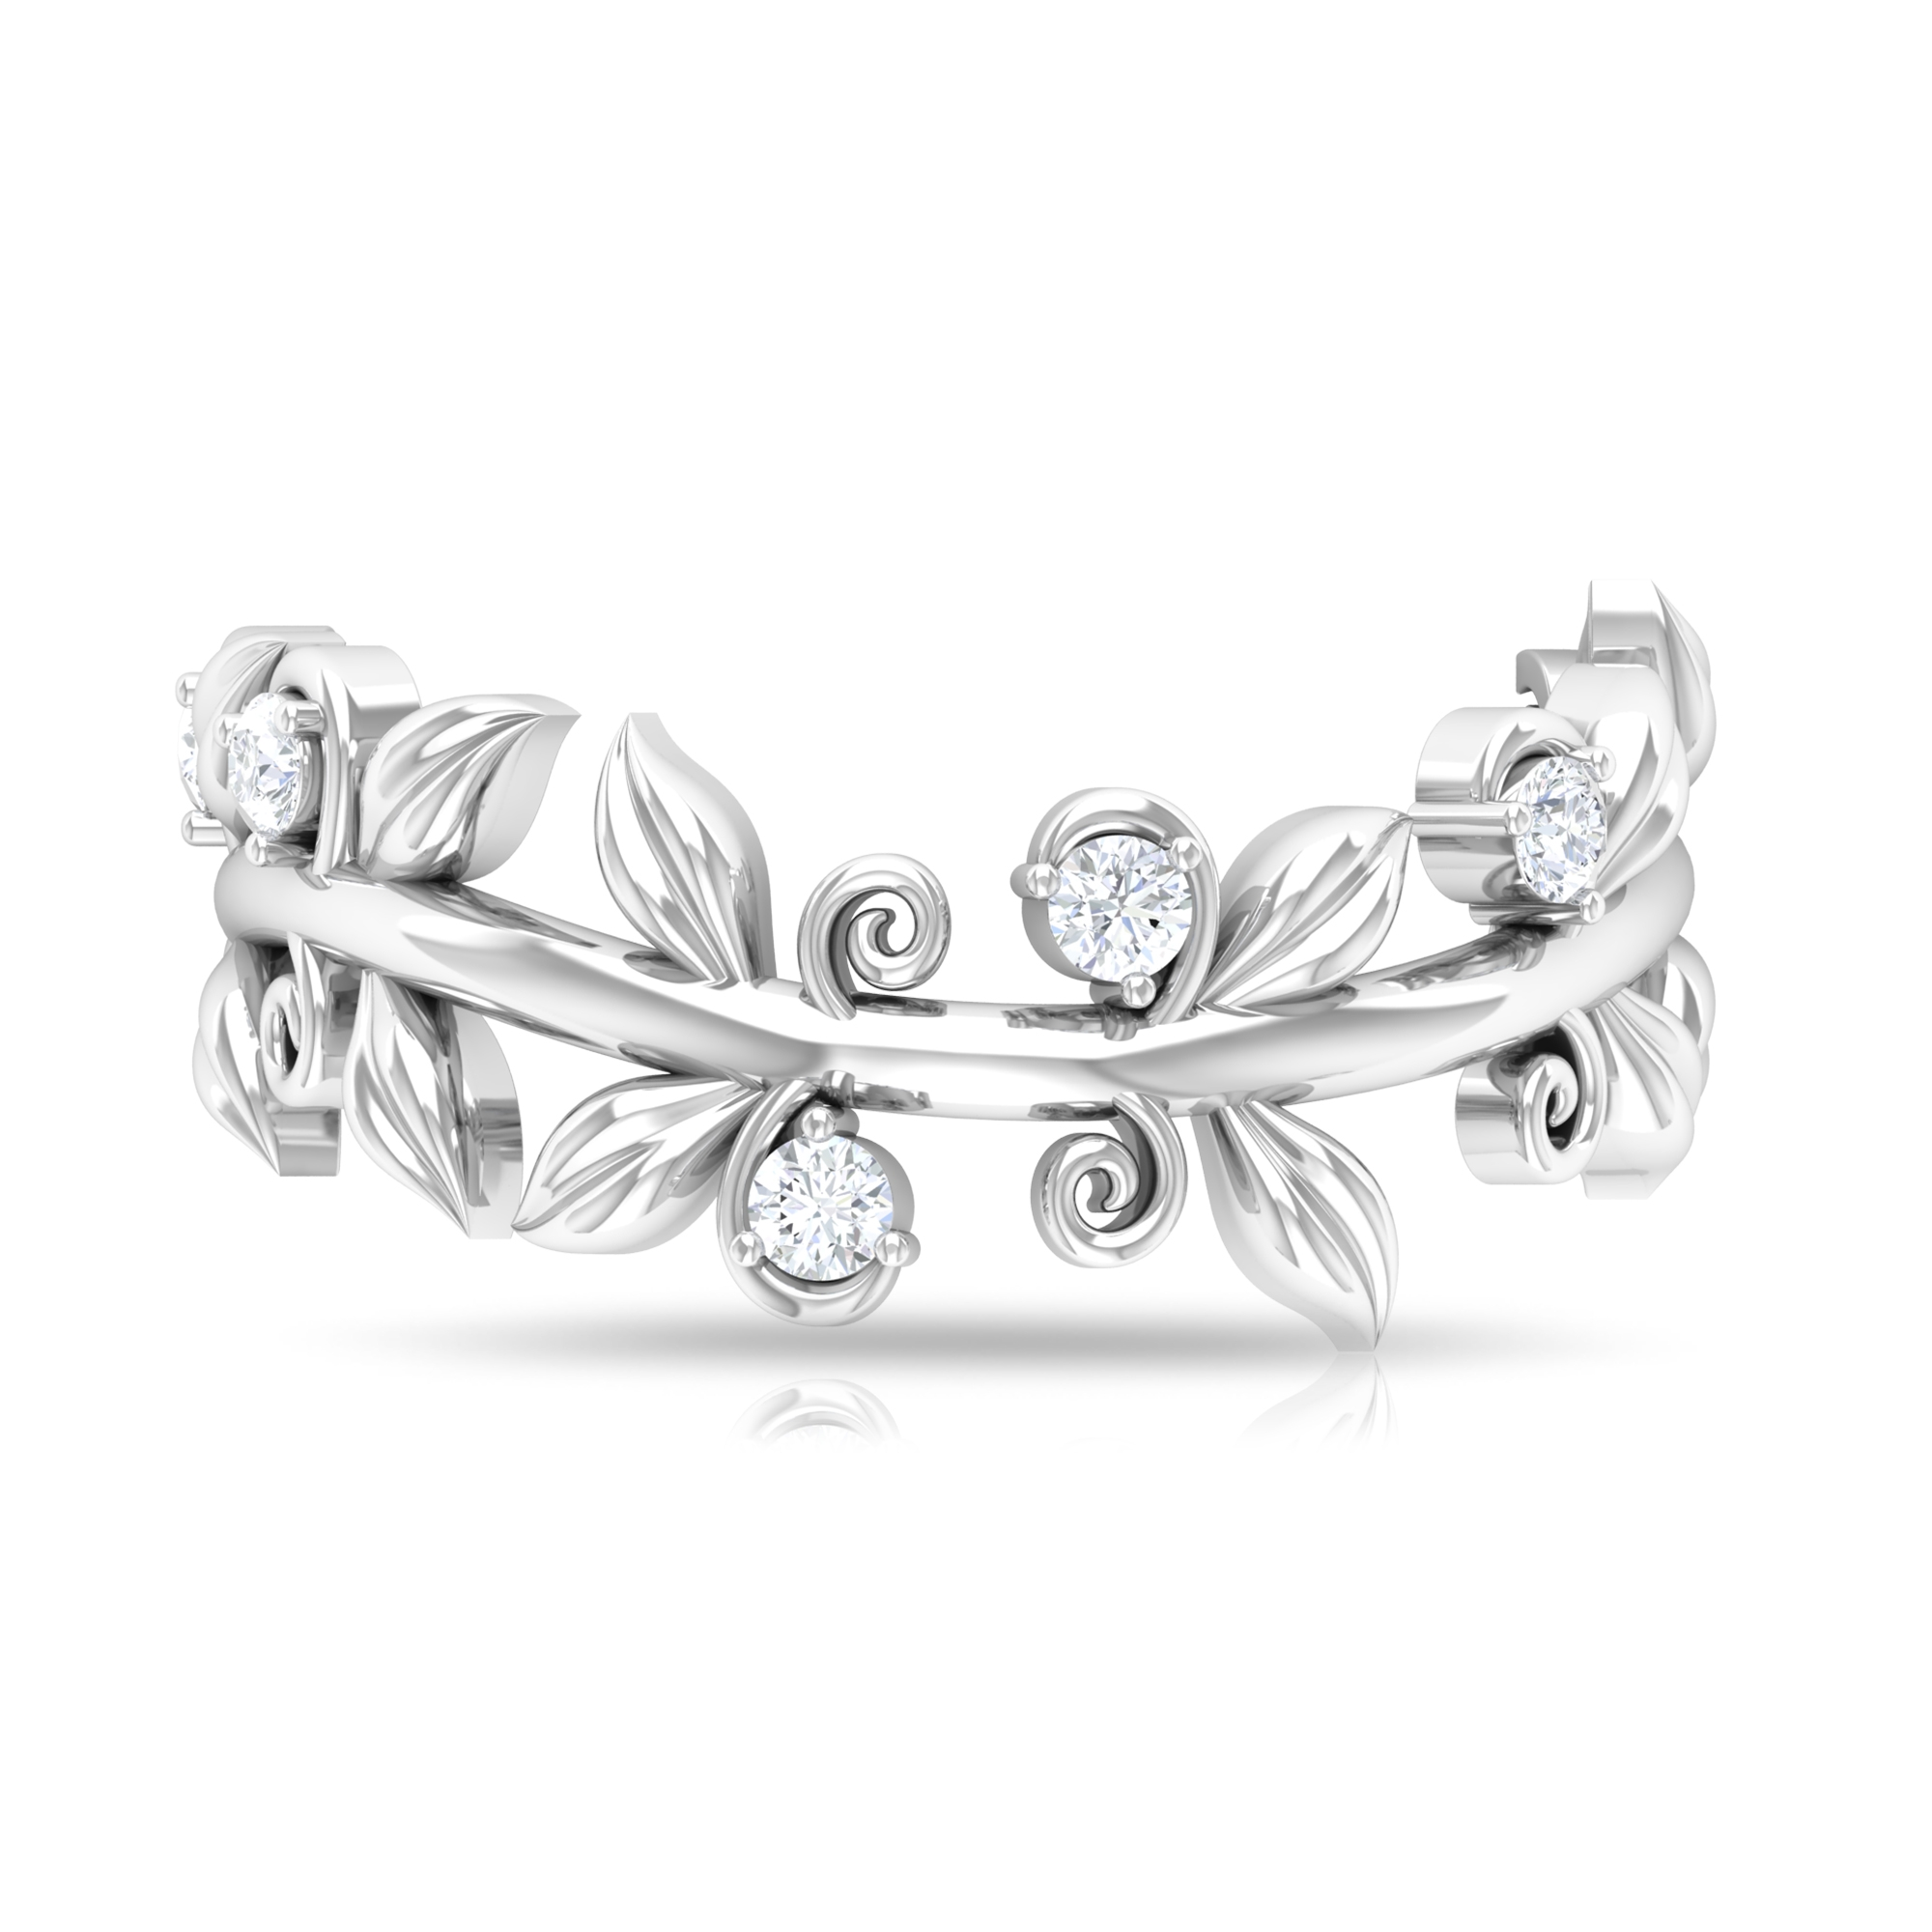 1/2 CT Prong Set Diamond and Gold Band Ring with Leaf Motif